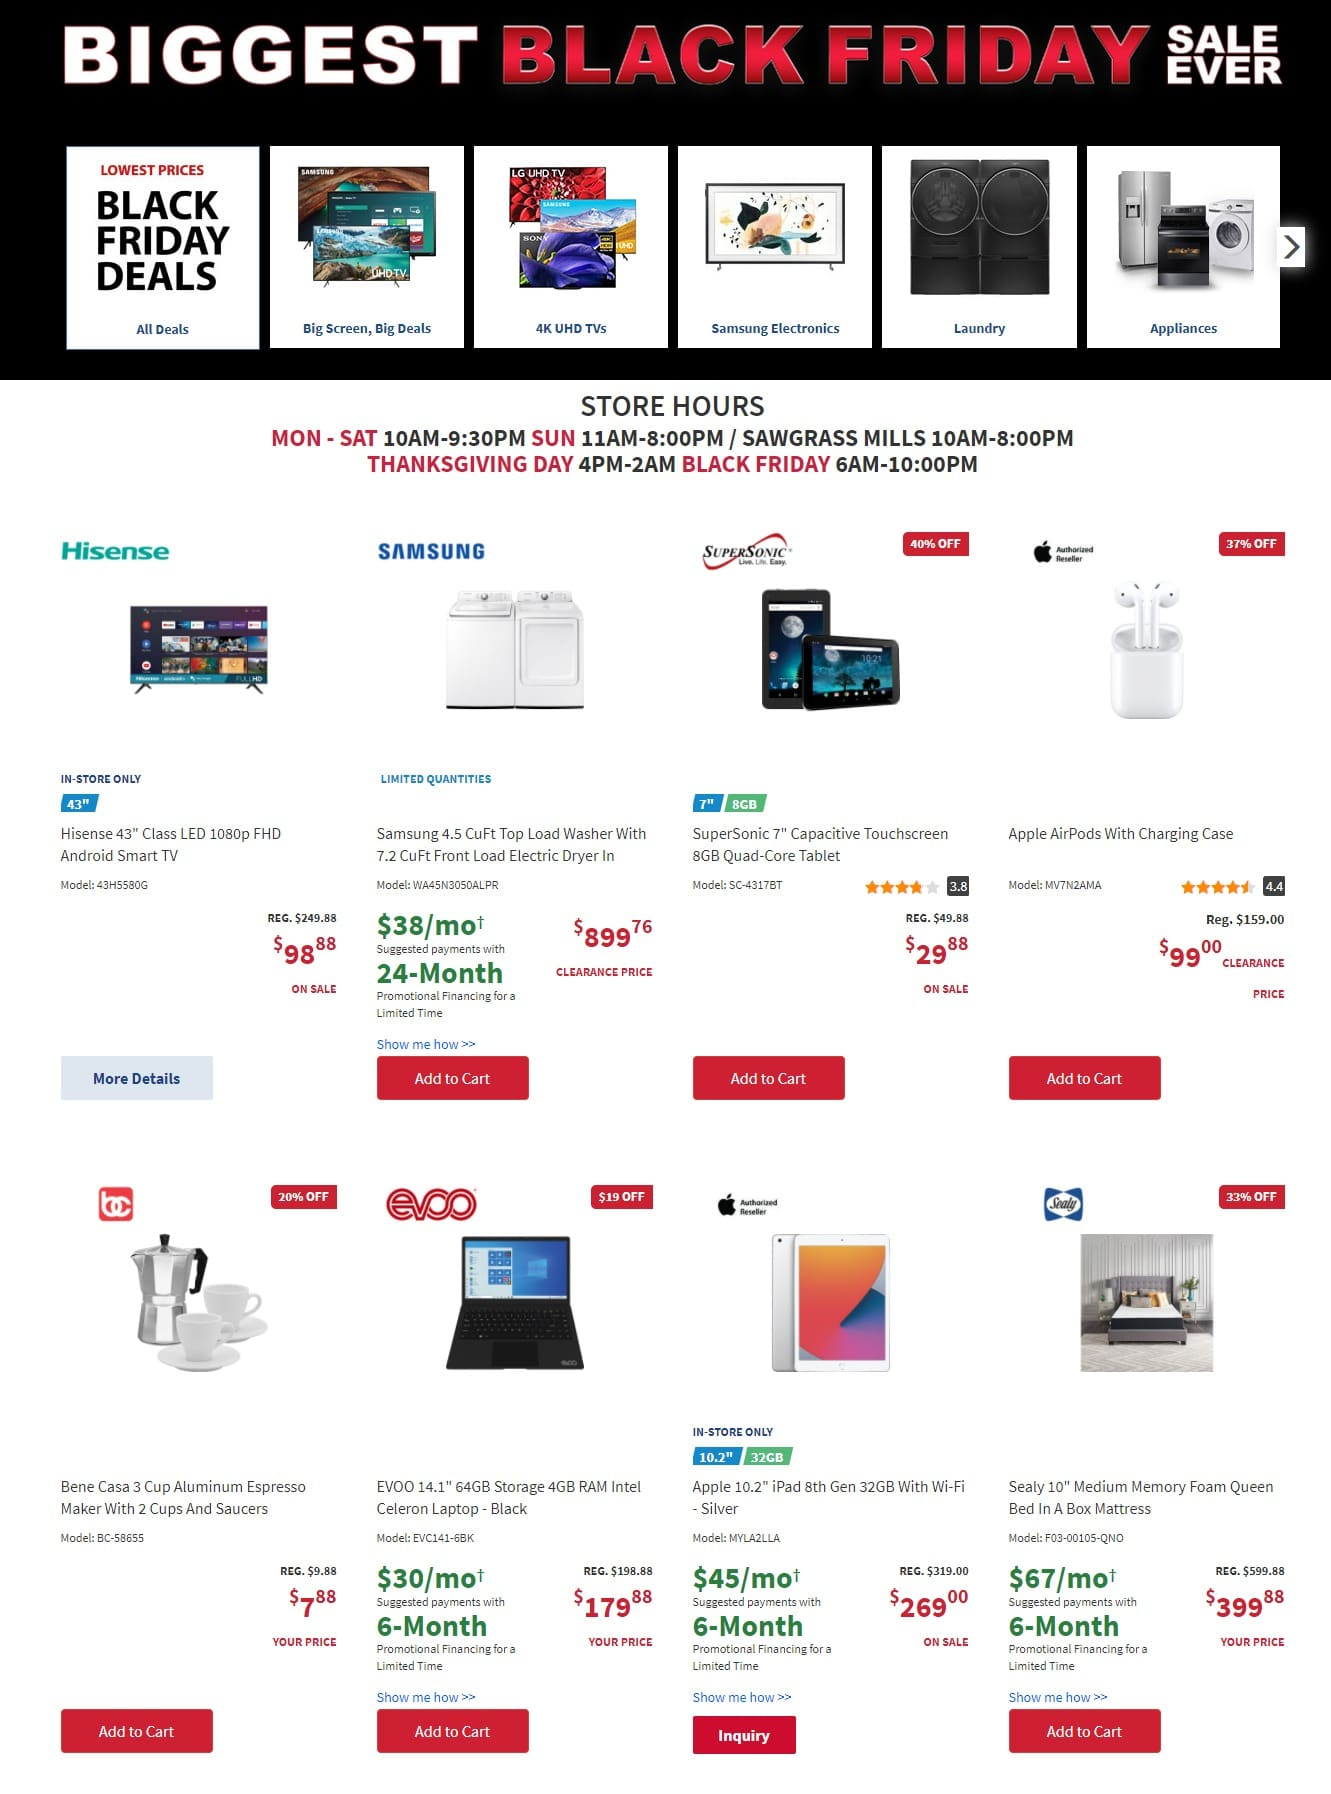 BrandsMart U.S.A. Black Friday Sale 2020